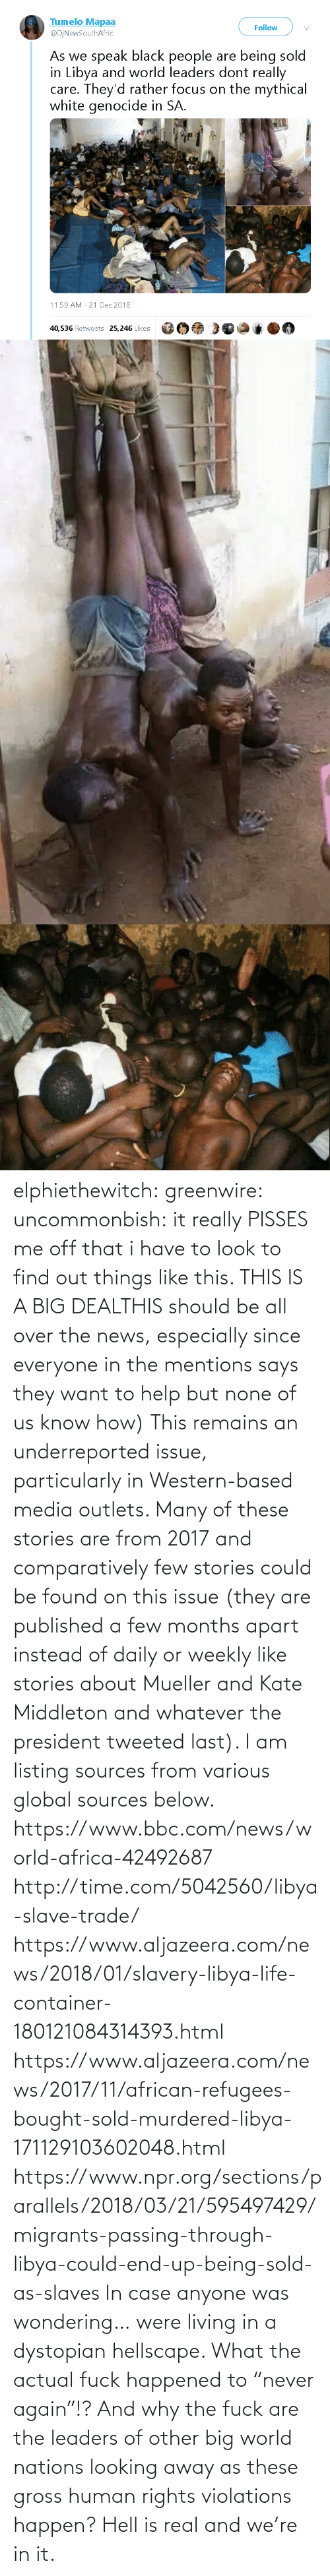 "Is A: elphiethewitch: greenwire:  uncommonbish:  it really PISSES me off that i have to look to find out things like this. THIS IS A BIG DEALTHIS should be all over the news, especially since everyone in the mentions says they want to help but none of us know how)  This remains an underreported issue, particularly in Western-based media outlets. Many of these stories are from 2017 and comparatively few stories could be found on this issue (they are published a few months apart instead of daily or weekly like stories about Mueller and Kate Middleton and whatever the president tweeted last). I am listing sources from various global sources below.  https://www.bbc.com/news/world-africa-42492687 http://time.com/5042560/libya-slave-trade/ https://www.aljazeera.com/news/2018/01/slavery-libya-life-container-180121084314393.html https://www.aljazeera.com/news/2017/11/african-refugees-bought-sold-murdered-libya-171129103602048.html https://www.npr.org/sections/parallels/2018/03/21/595497429/migrants-passing-through-libya-could-end-up-being-sold-as-slaves   In case anyone was wondering… were living in a dystopian hellscape.  What the actual fuck happened to ""never again""!? And why the fuck are the leaders of other big world nations looking away as these gross human rights violations happen?  Hell is real and we're in it."